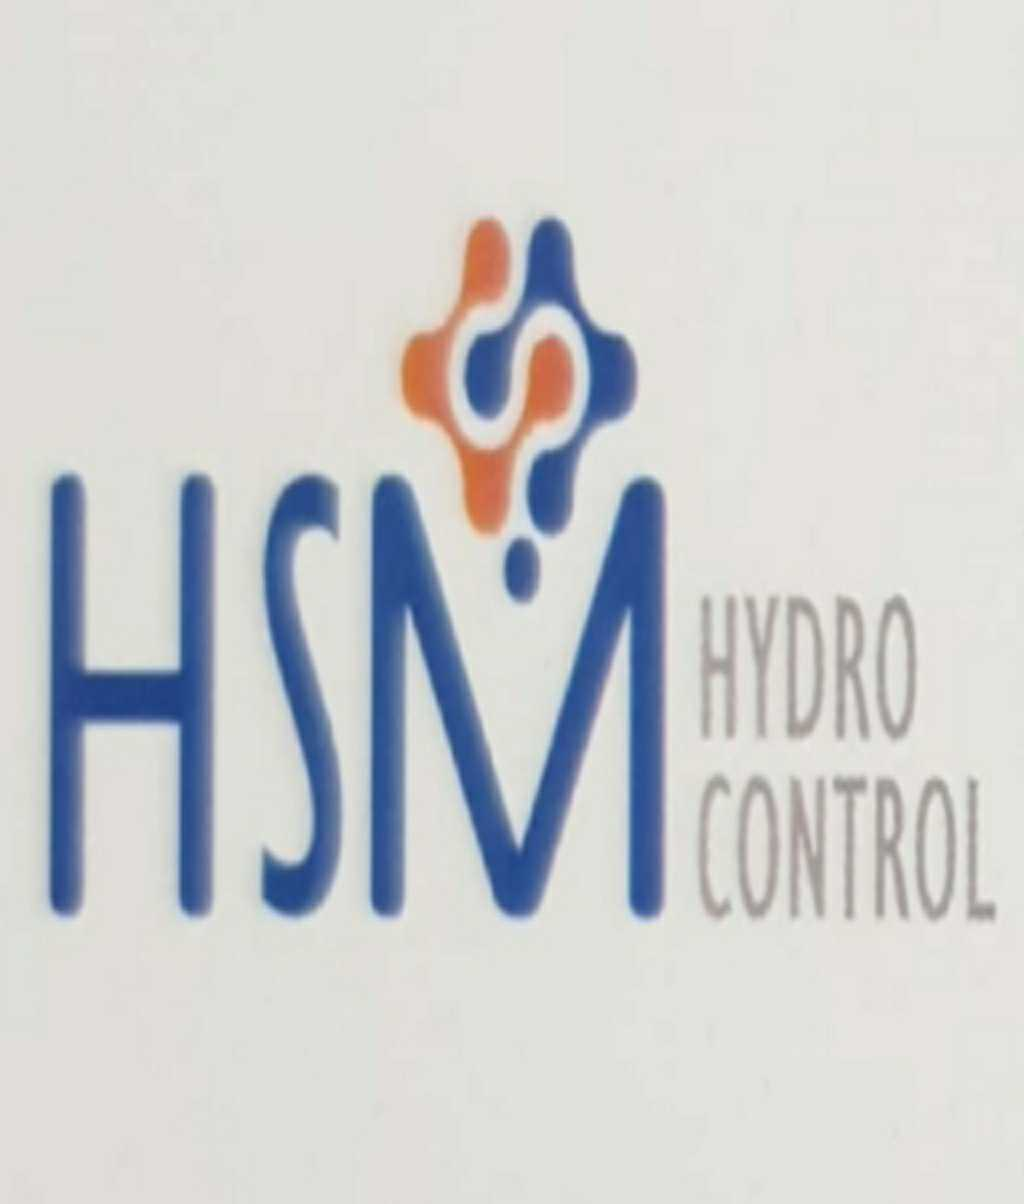 HSM HYDRO CONTROL PRIVATE LIMITED